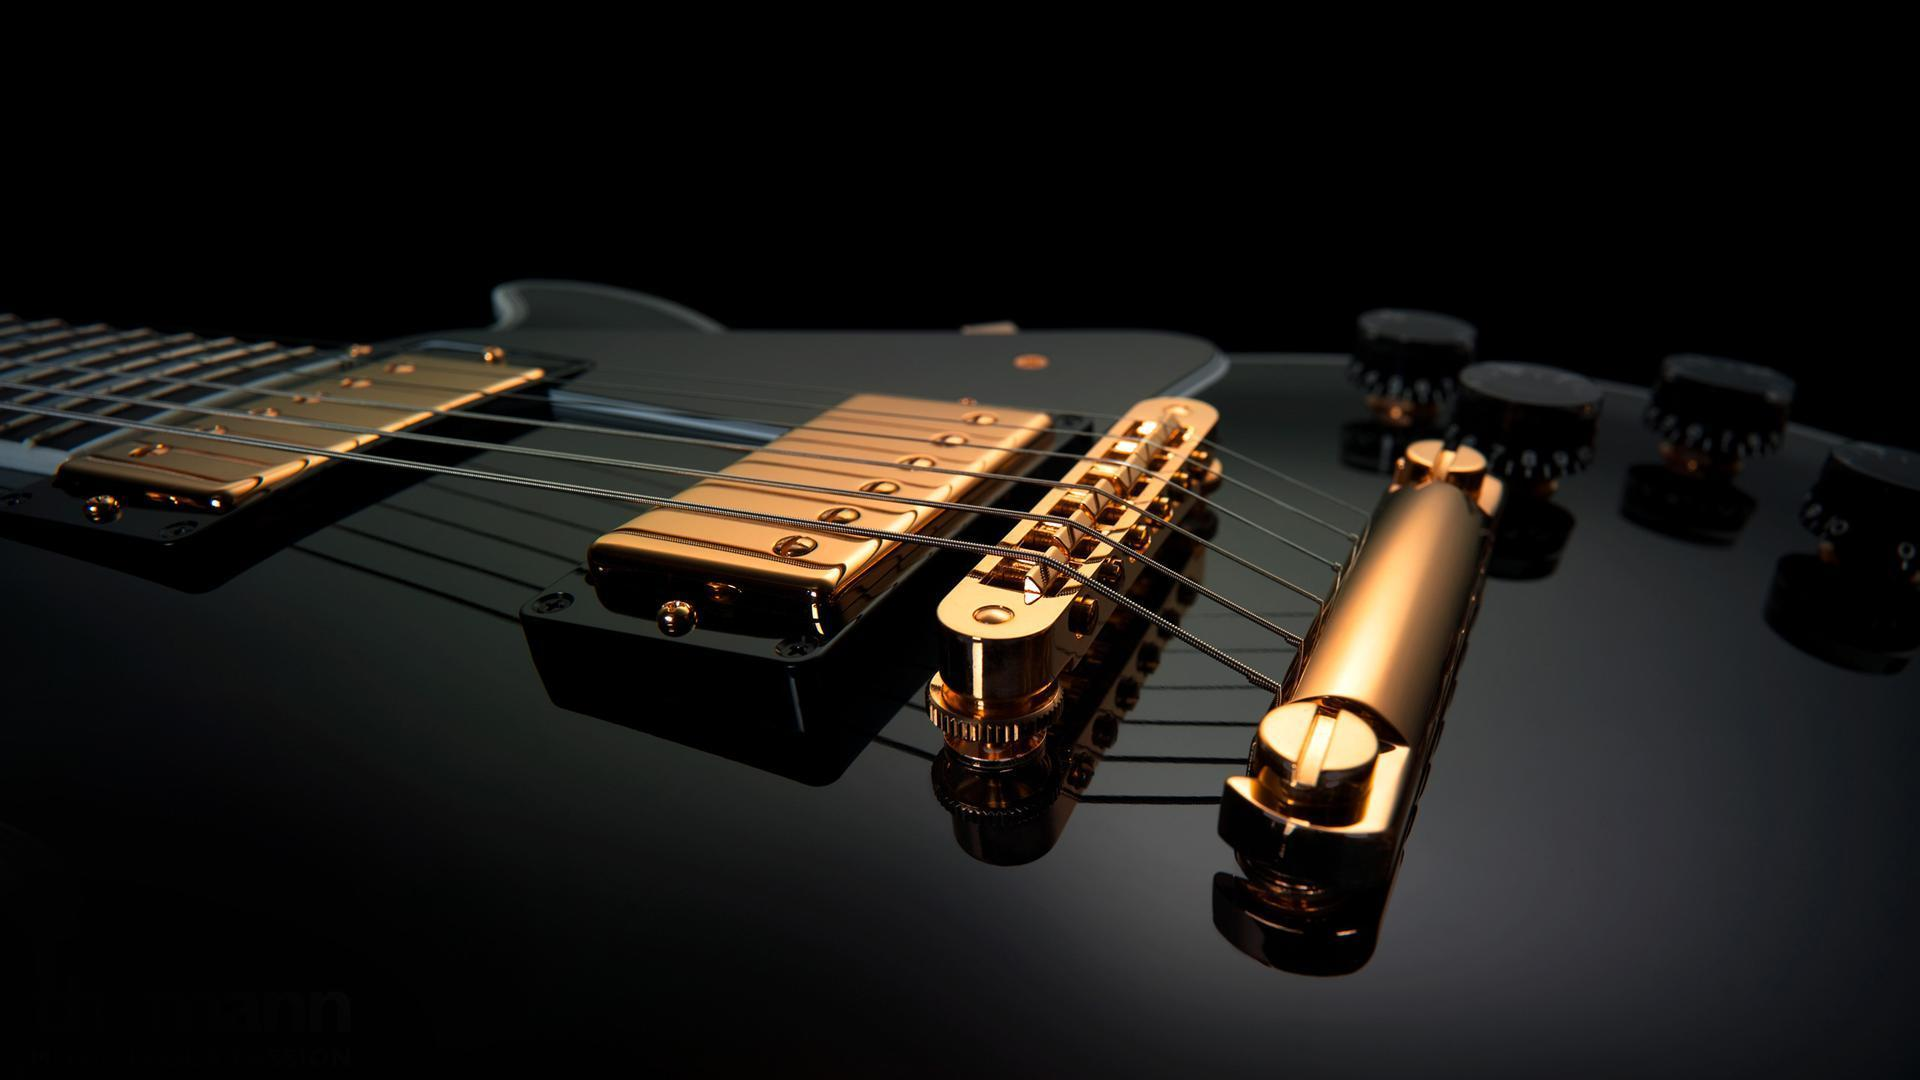 Wallpapers For > Bass Guitar Wallpapers